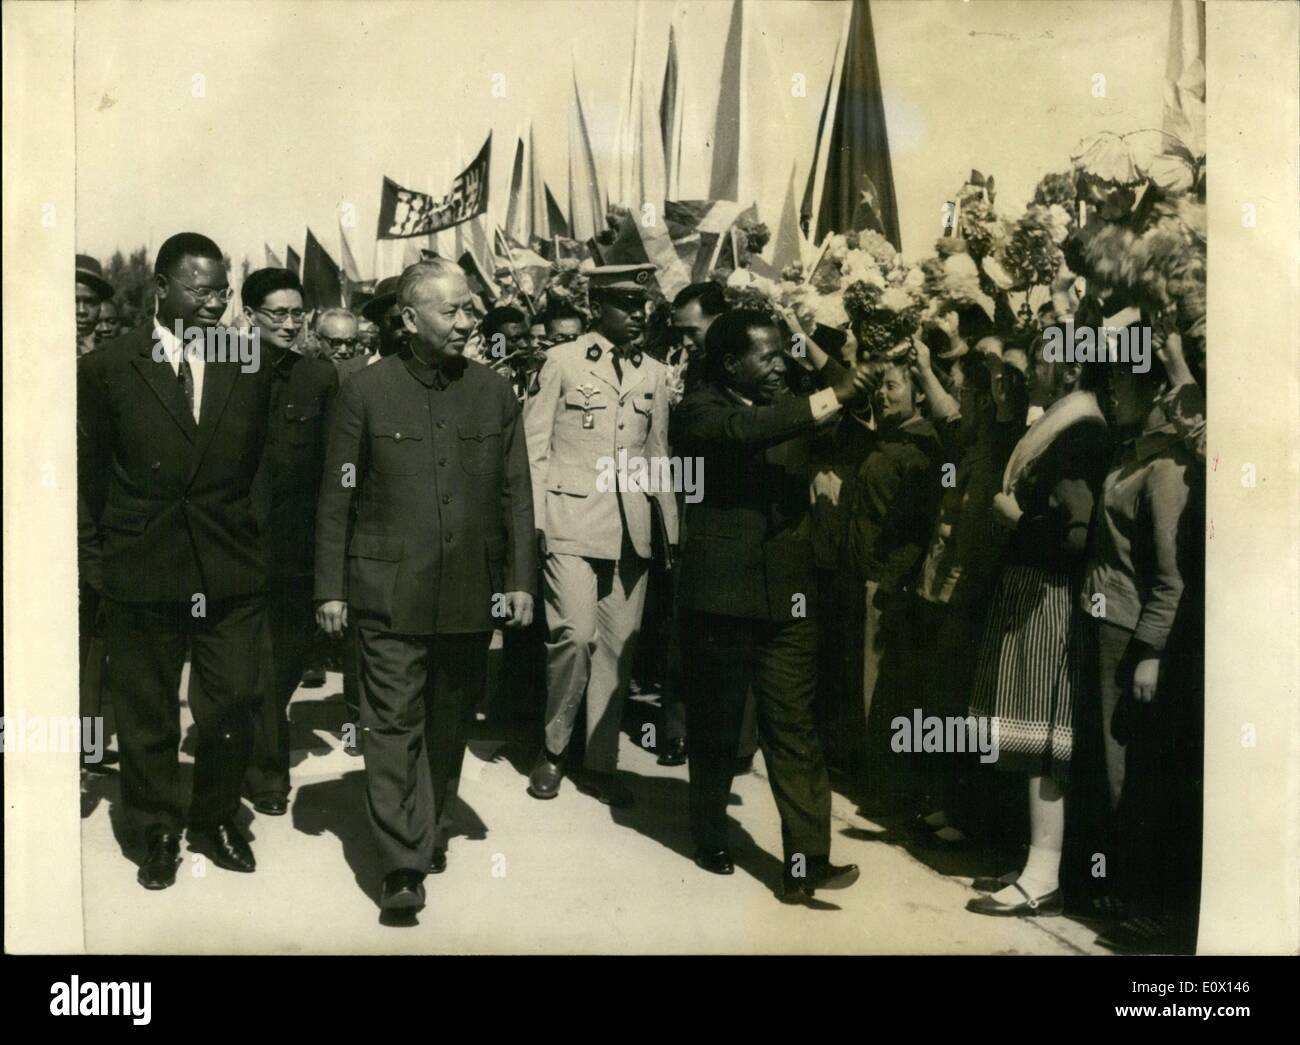 Oct. 10, 1964 - Enclosed find pix of Chinese-Congolese amity, and of anti-imperialistic demonstrations in Brazzaville. Photo shows President of the Republic of Congo, Alphonse Massamba-Debat (at right) being received at the airport of Pekin by President Liu Shao Chi (at left) - Stock Image